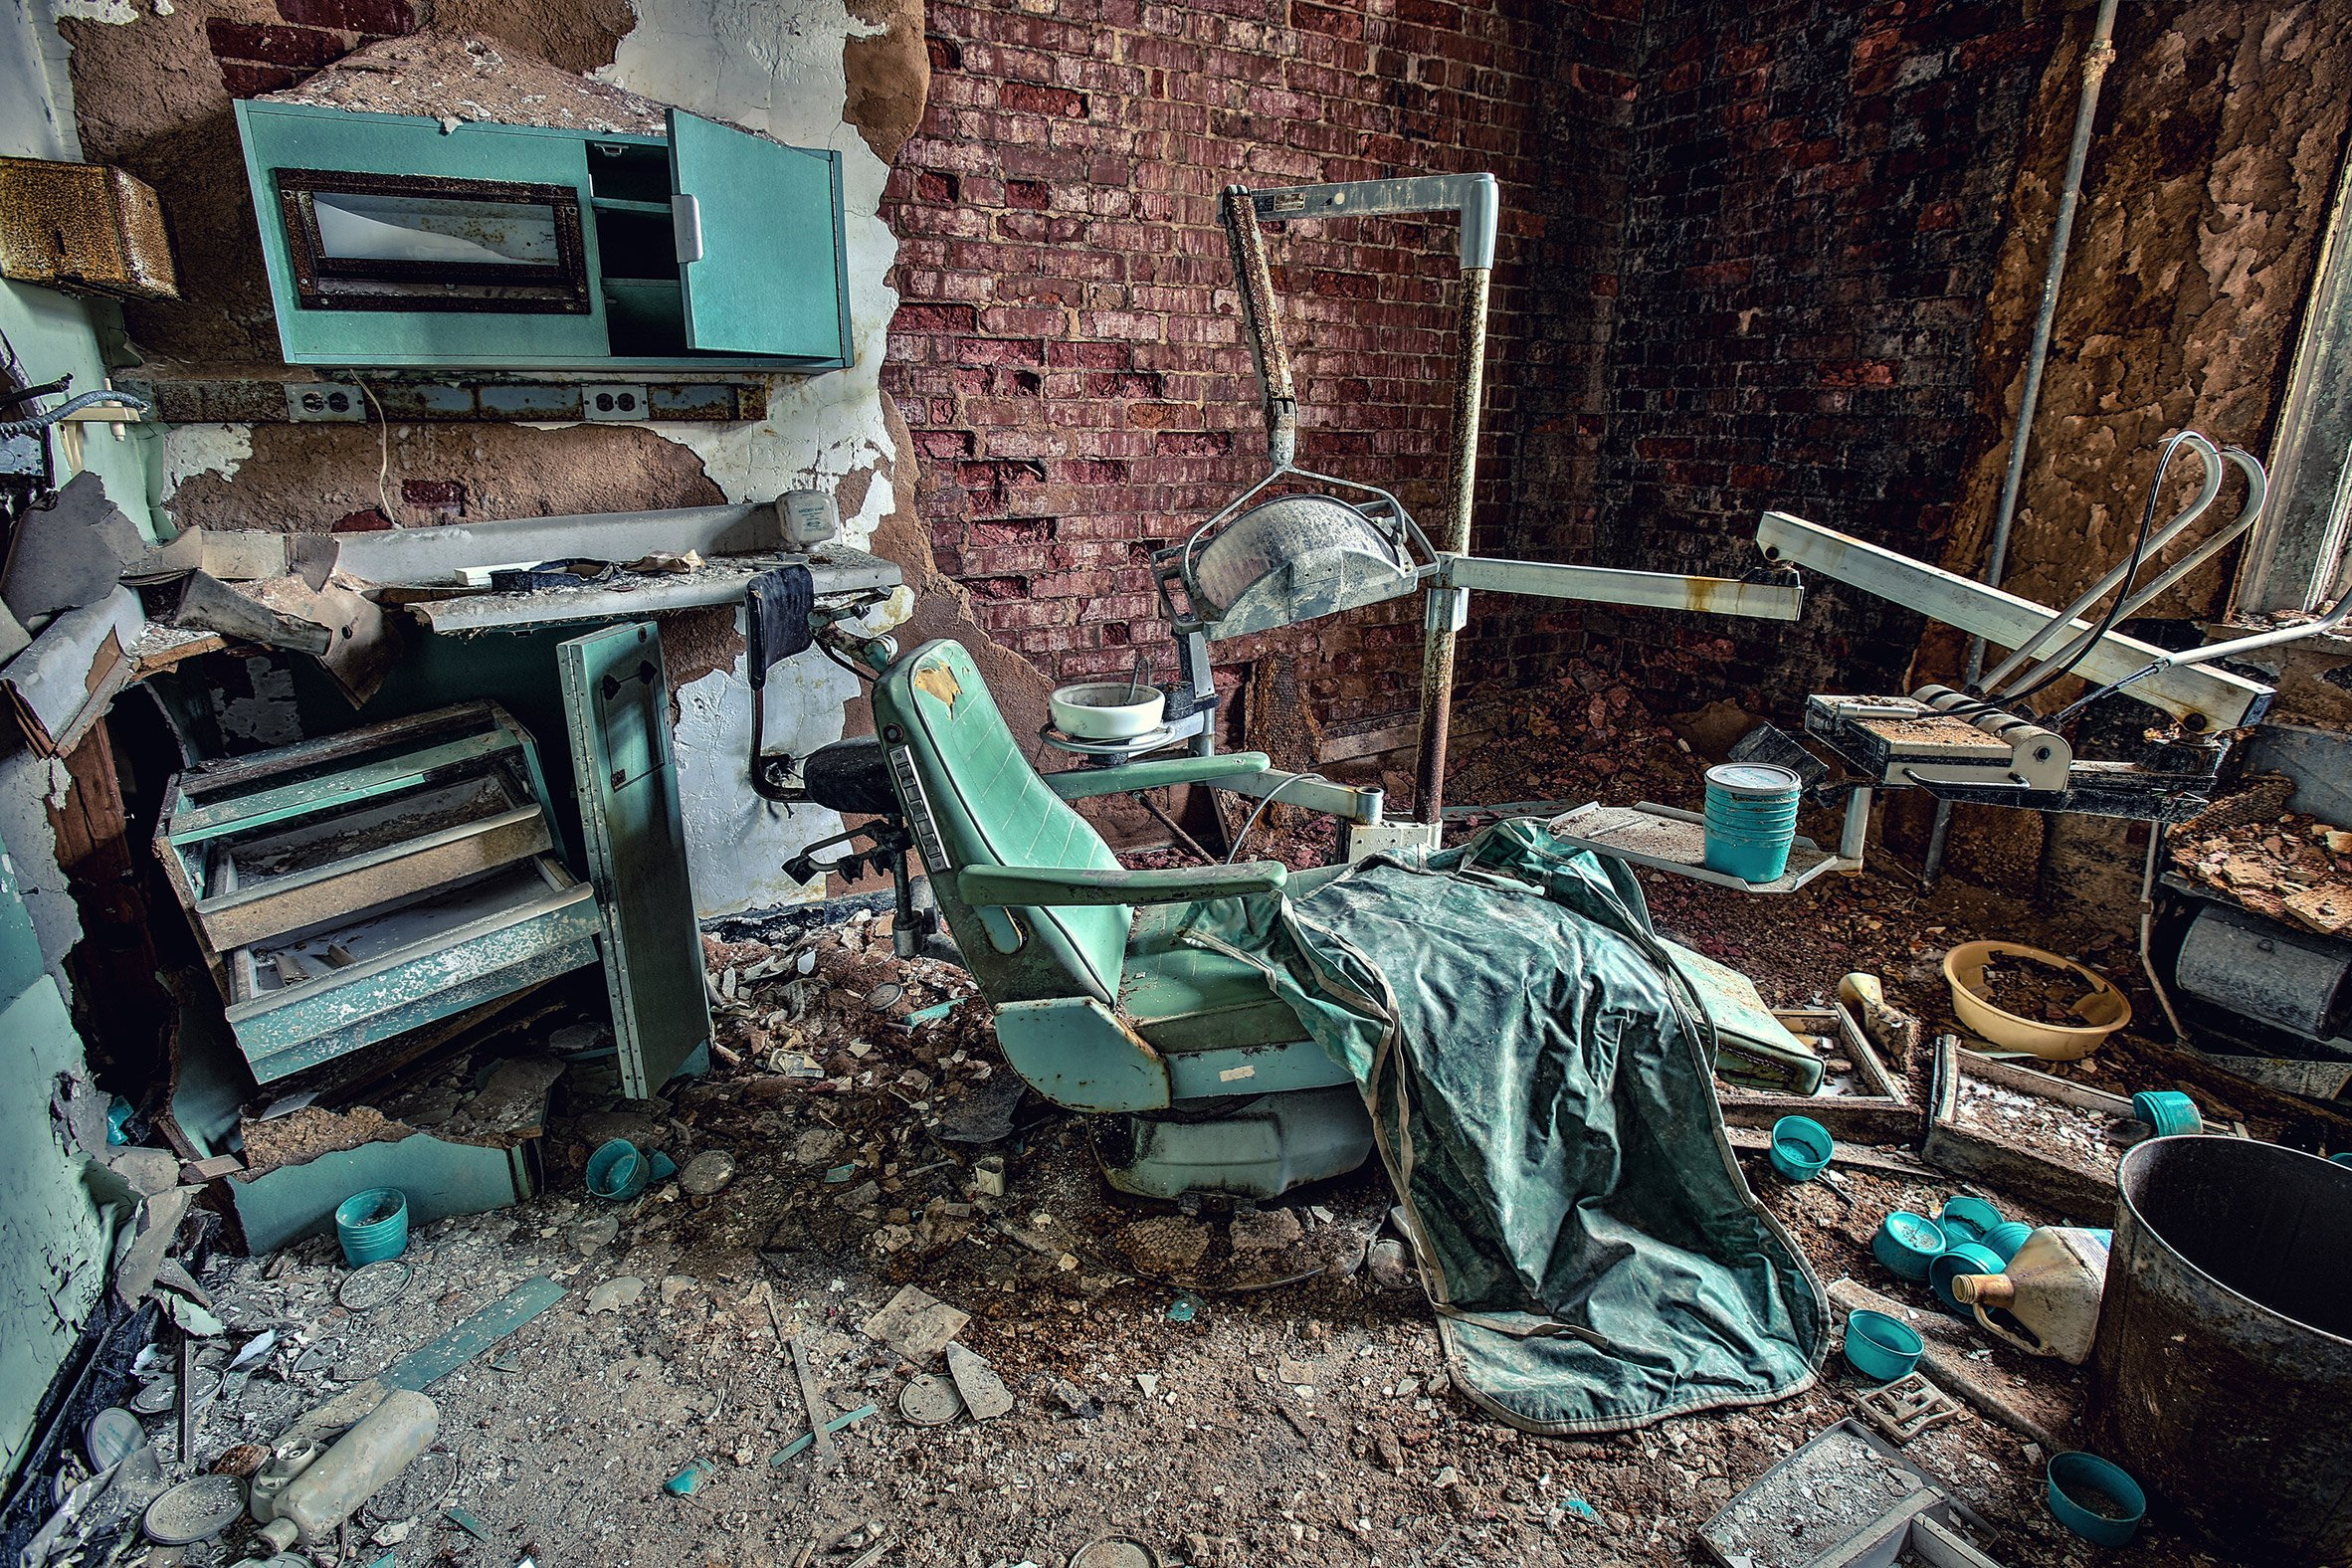 Matt Van der Velde photographs abandoned insane asylums